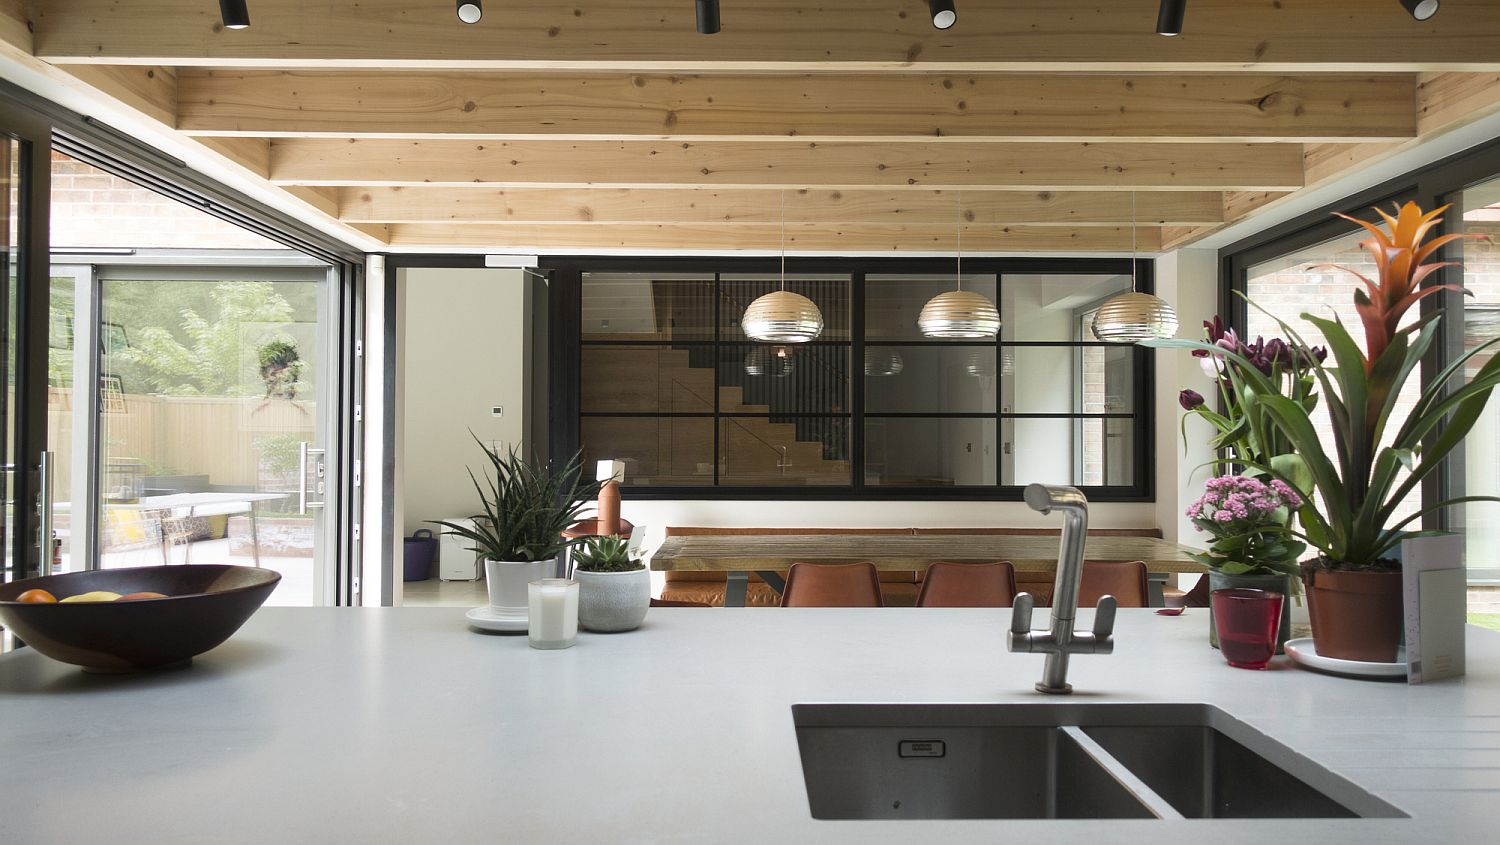 Dashing modern wood and white kitchen with gray accents